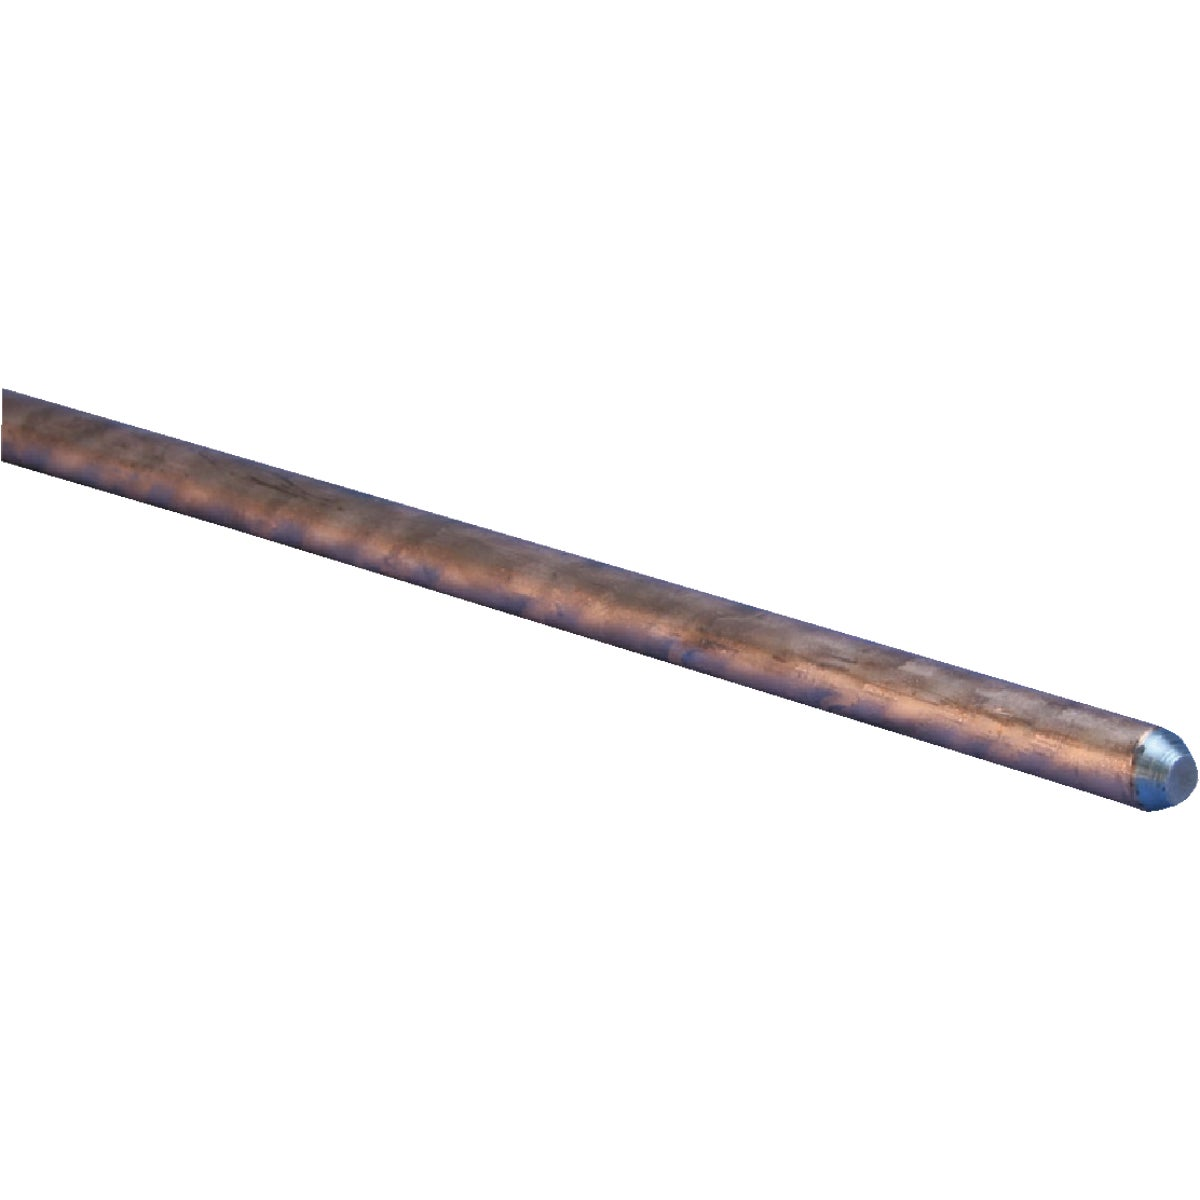 "5/8""X4' GROUND ROD - 615840UPC by Erico"